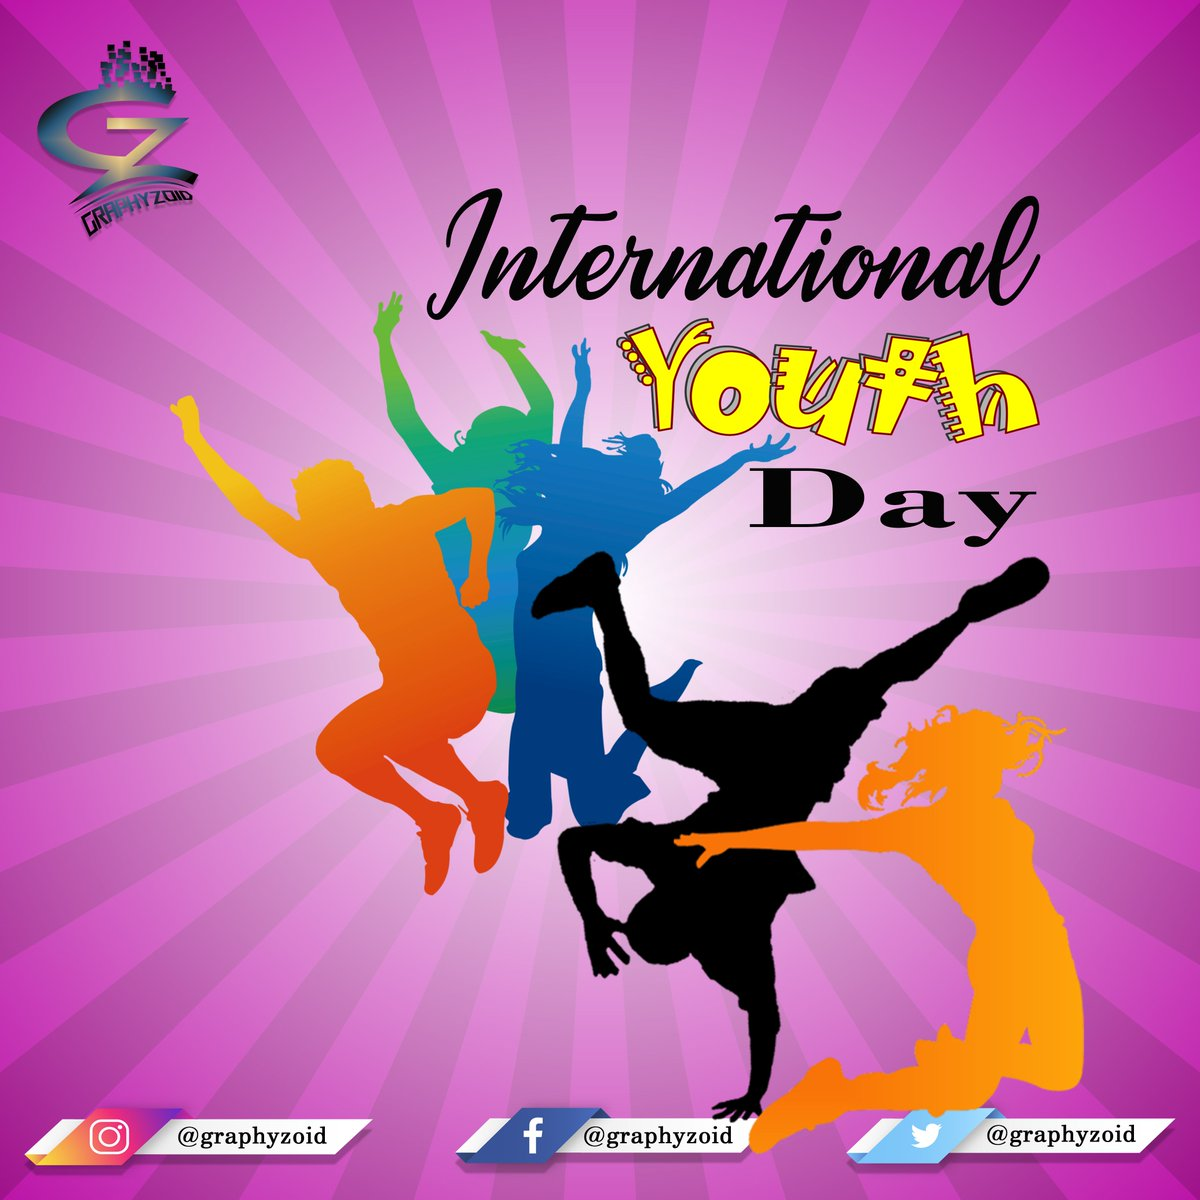 All the powers in the universe are already ours. It is we who have put our hands before our eyes and cry that it is dark . . . #internationalyogaday #internationalyogaday2020 #youthday #youth #nationalyouthday #youthgroup #youthpower #powerofyouth #international #graphyzoidpic.twitter.com/1TQ1e8WrO8